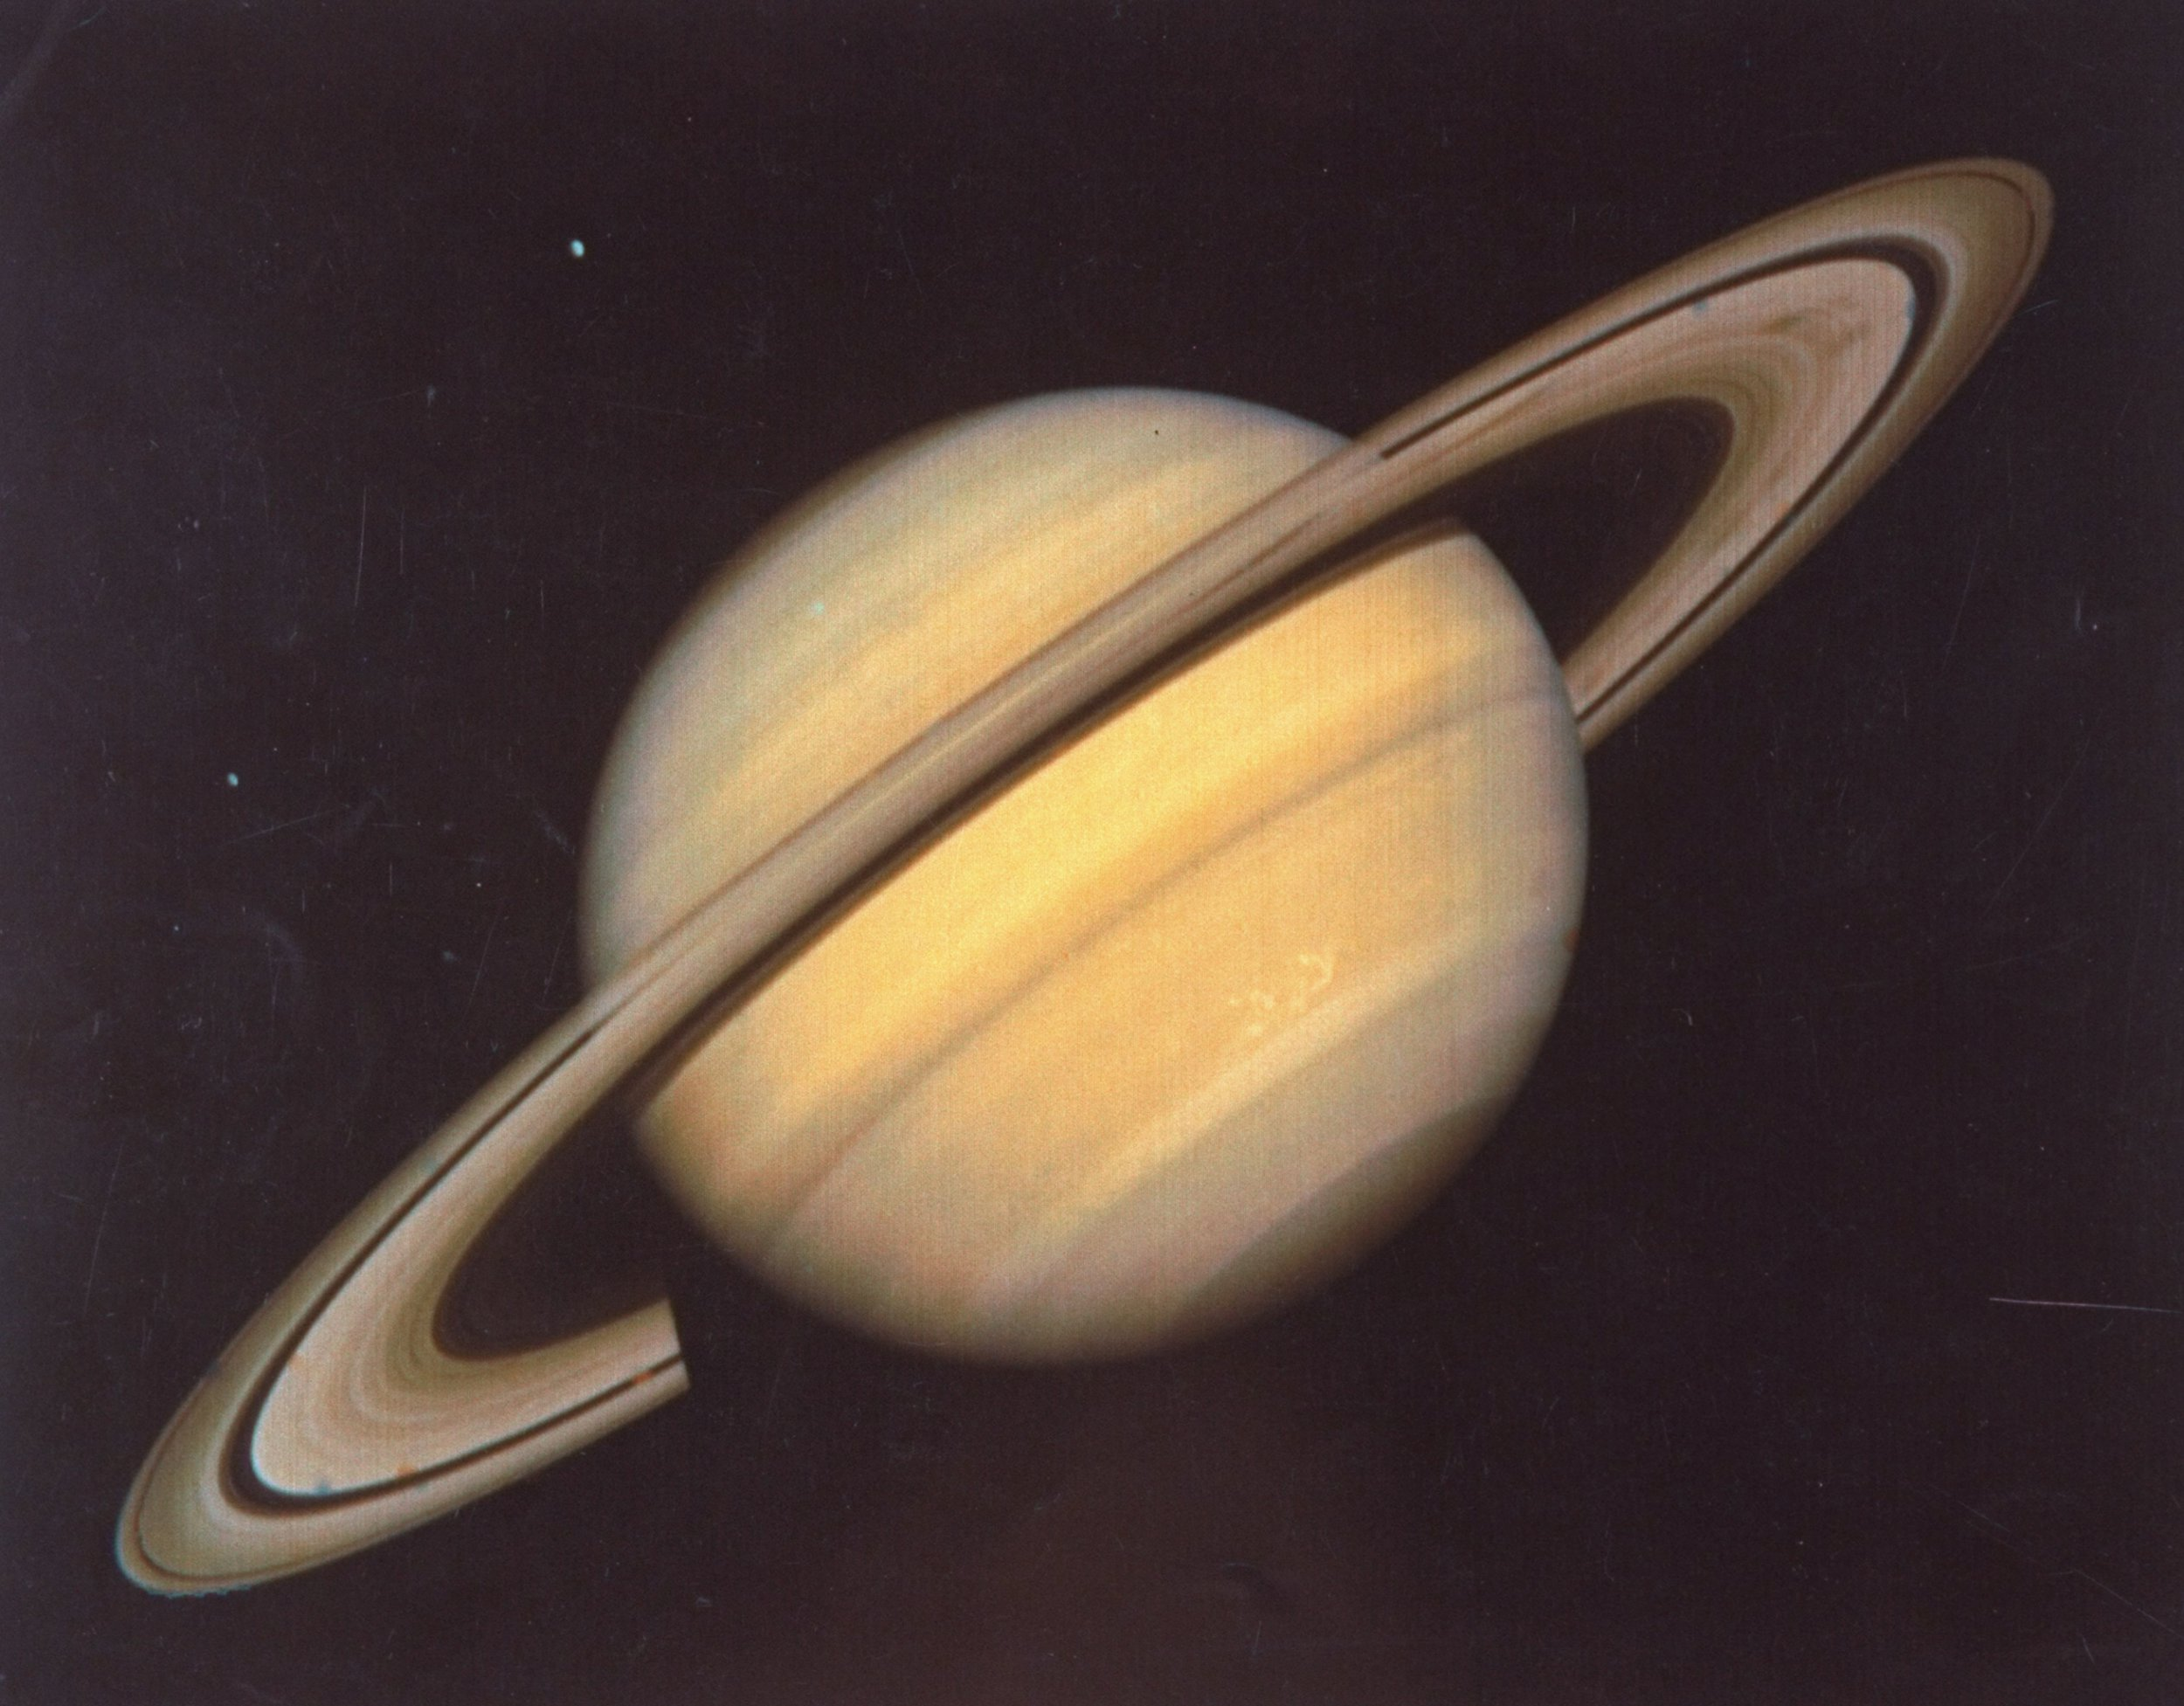 Saturn's rings are disappearing Saturn and moons Rhea and Dione taken by NASA's Voyager 2 spacecraft. (Photo by Time Life Pictures/NASA/JPL/The LIFE Picture Collection/Getty Images)